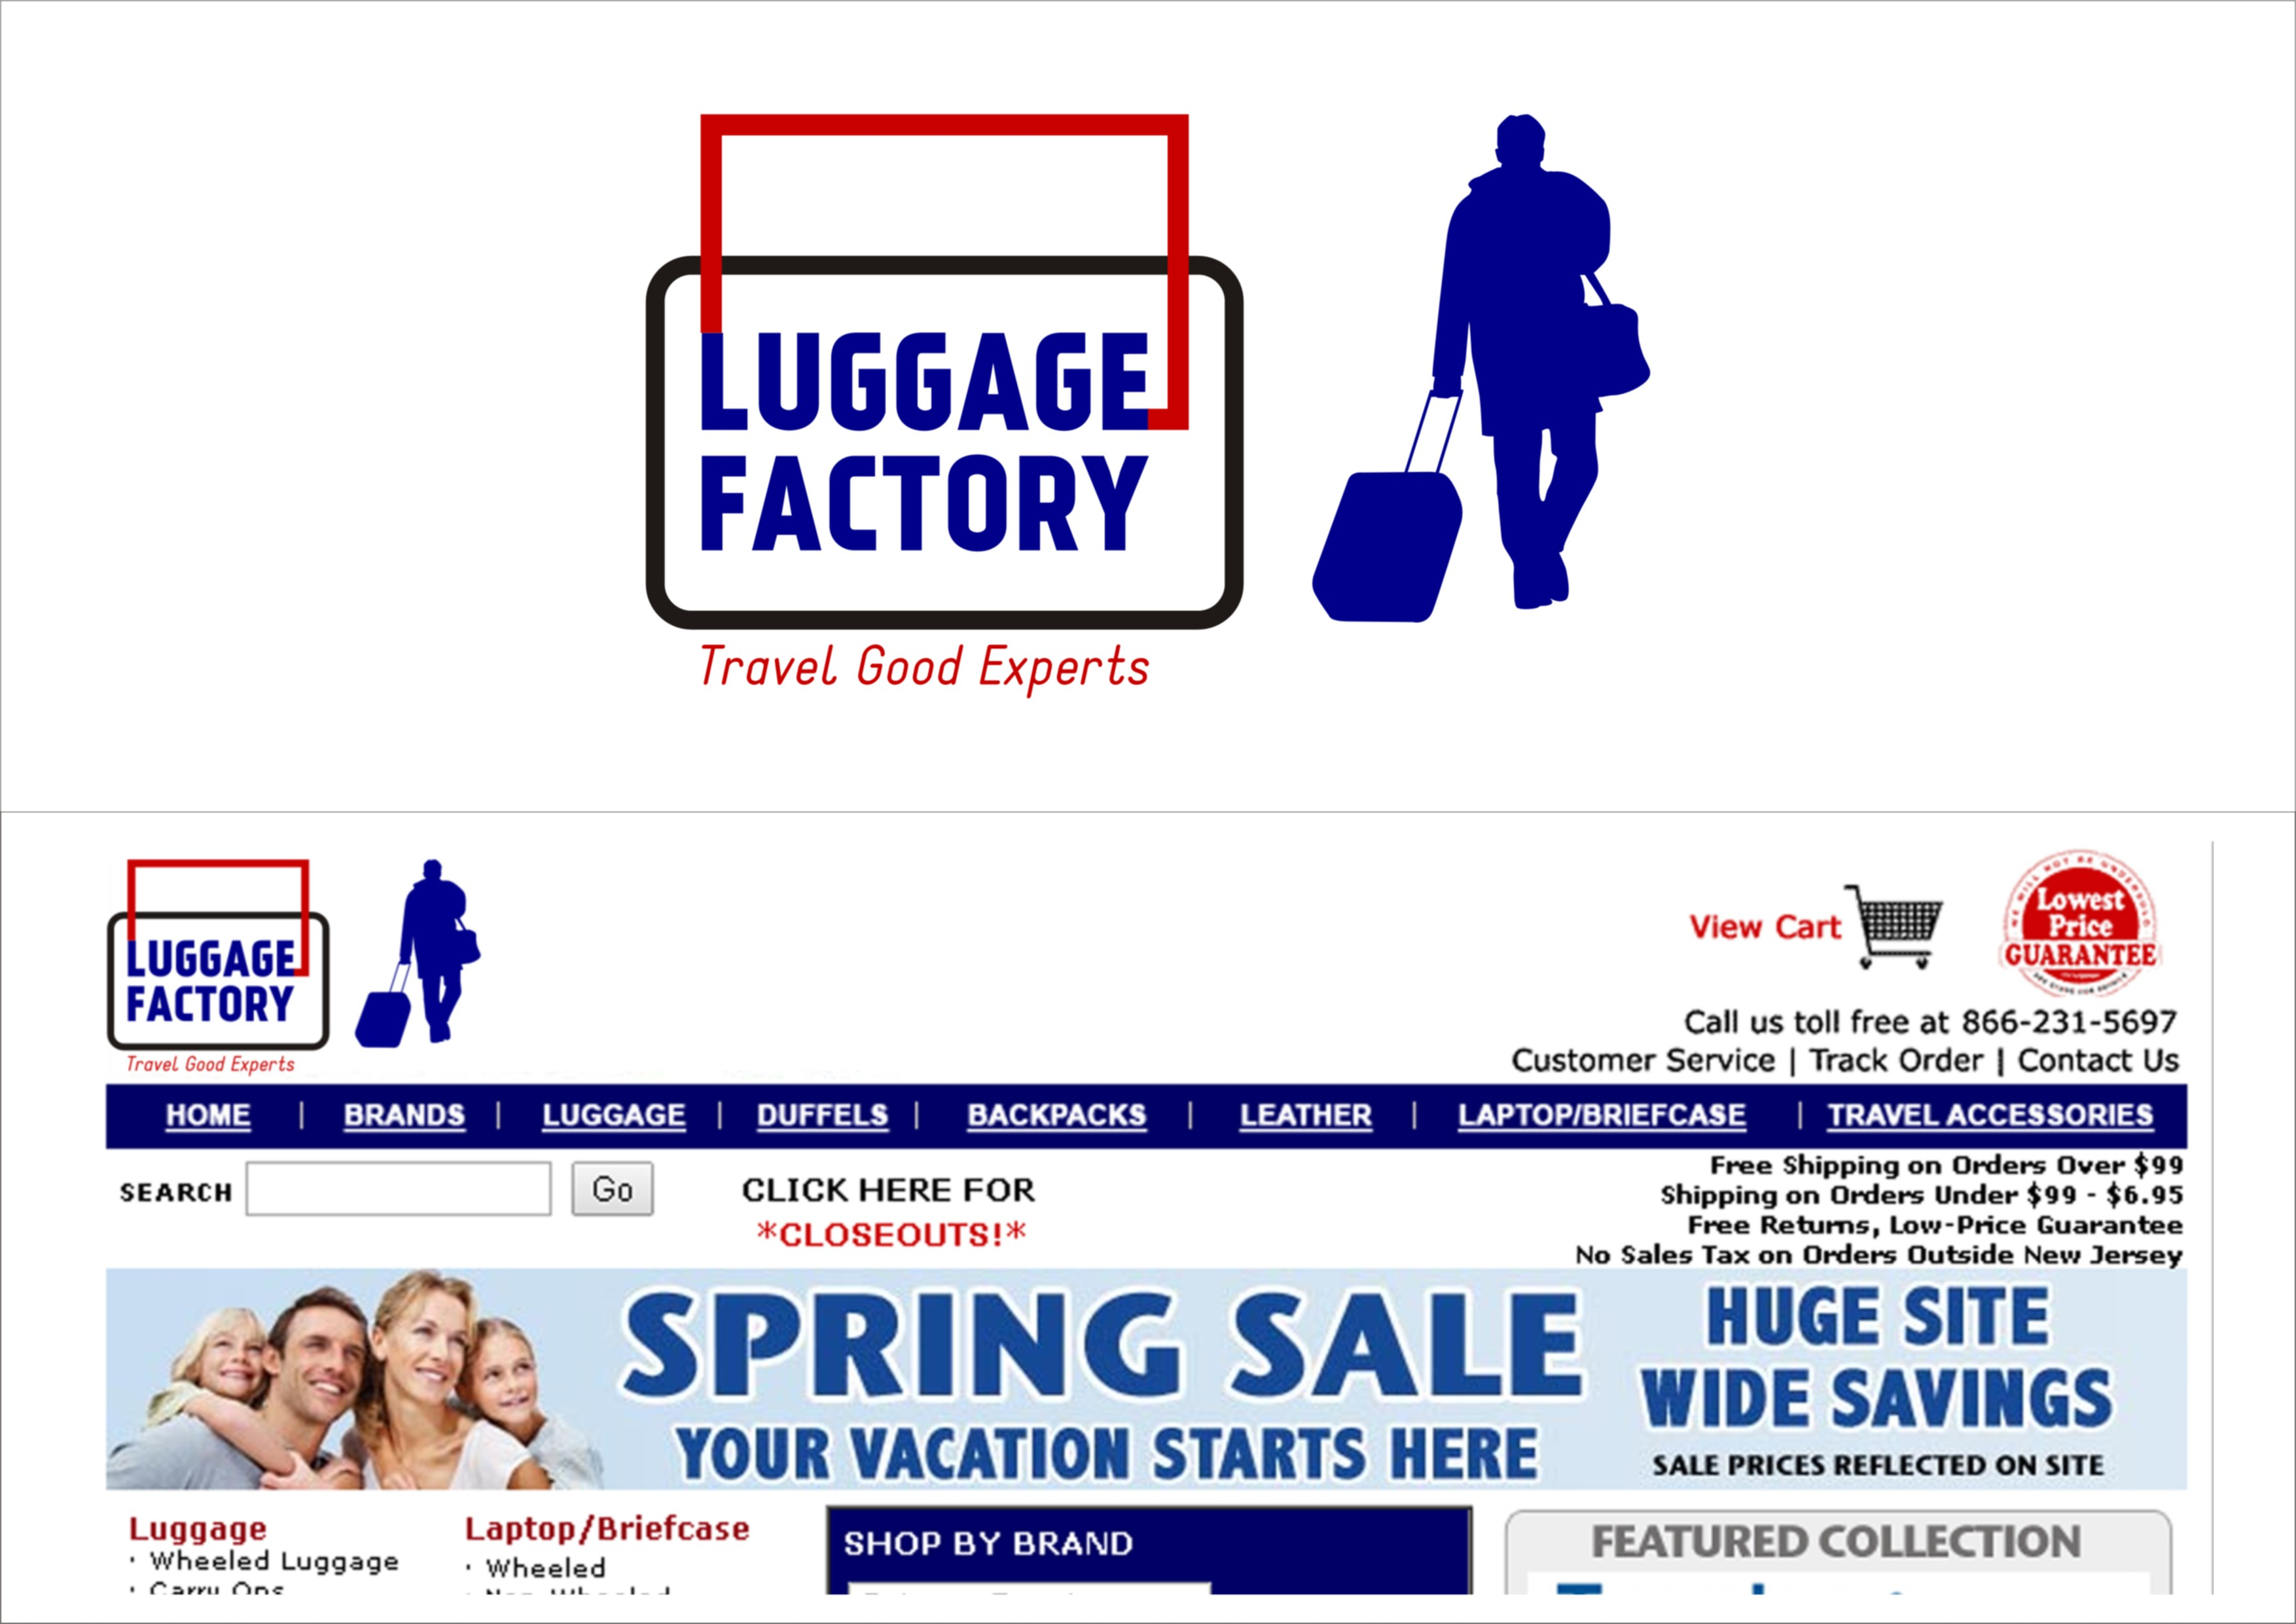 Logo Design by Amis Arc - Entry No. 223 in the Logo Design Contest Creative Logo Design for Luggage Factory.